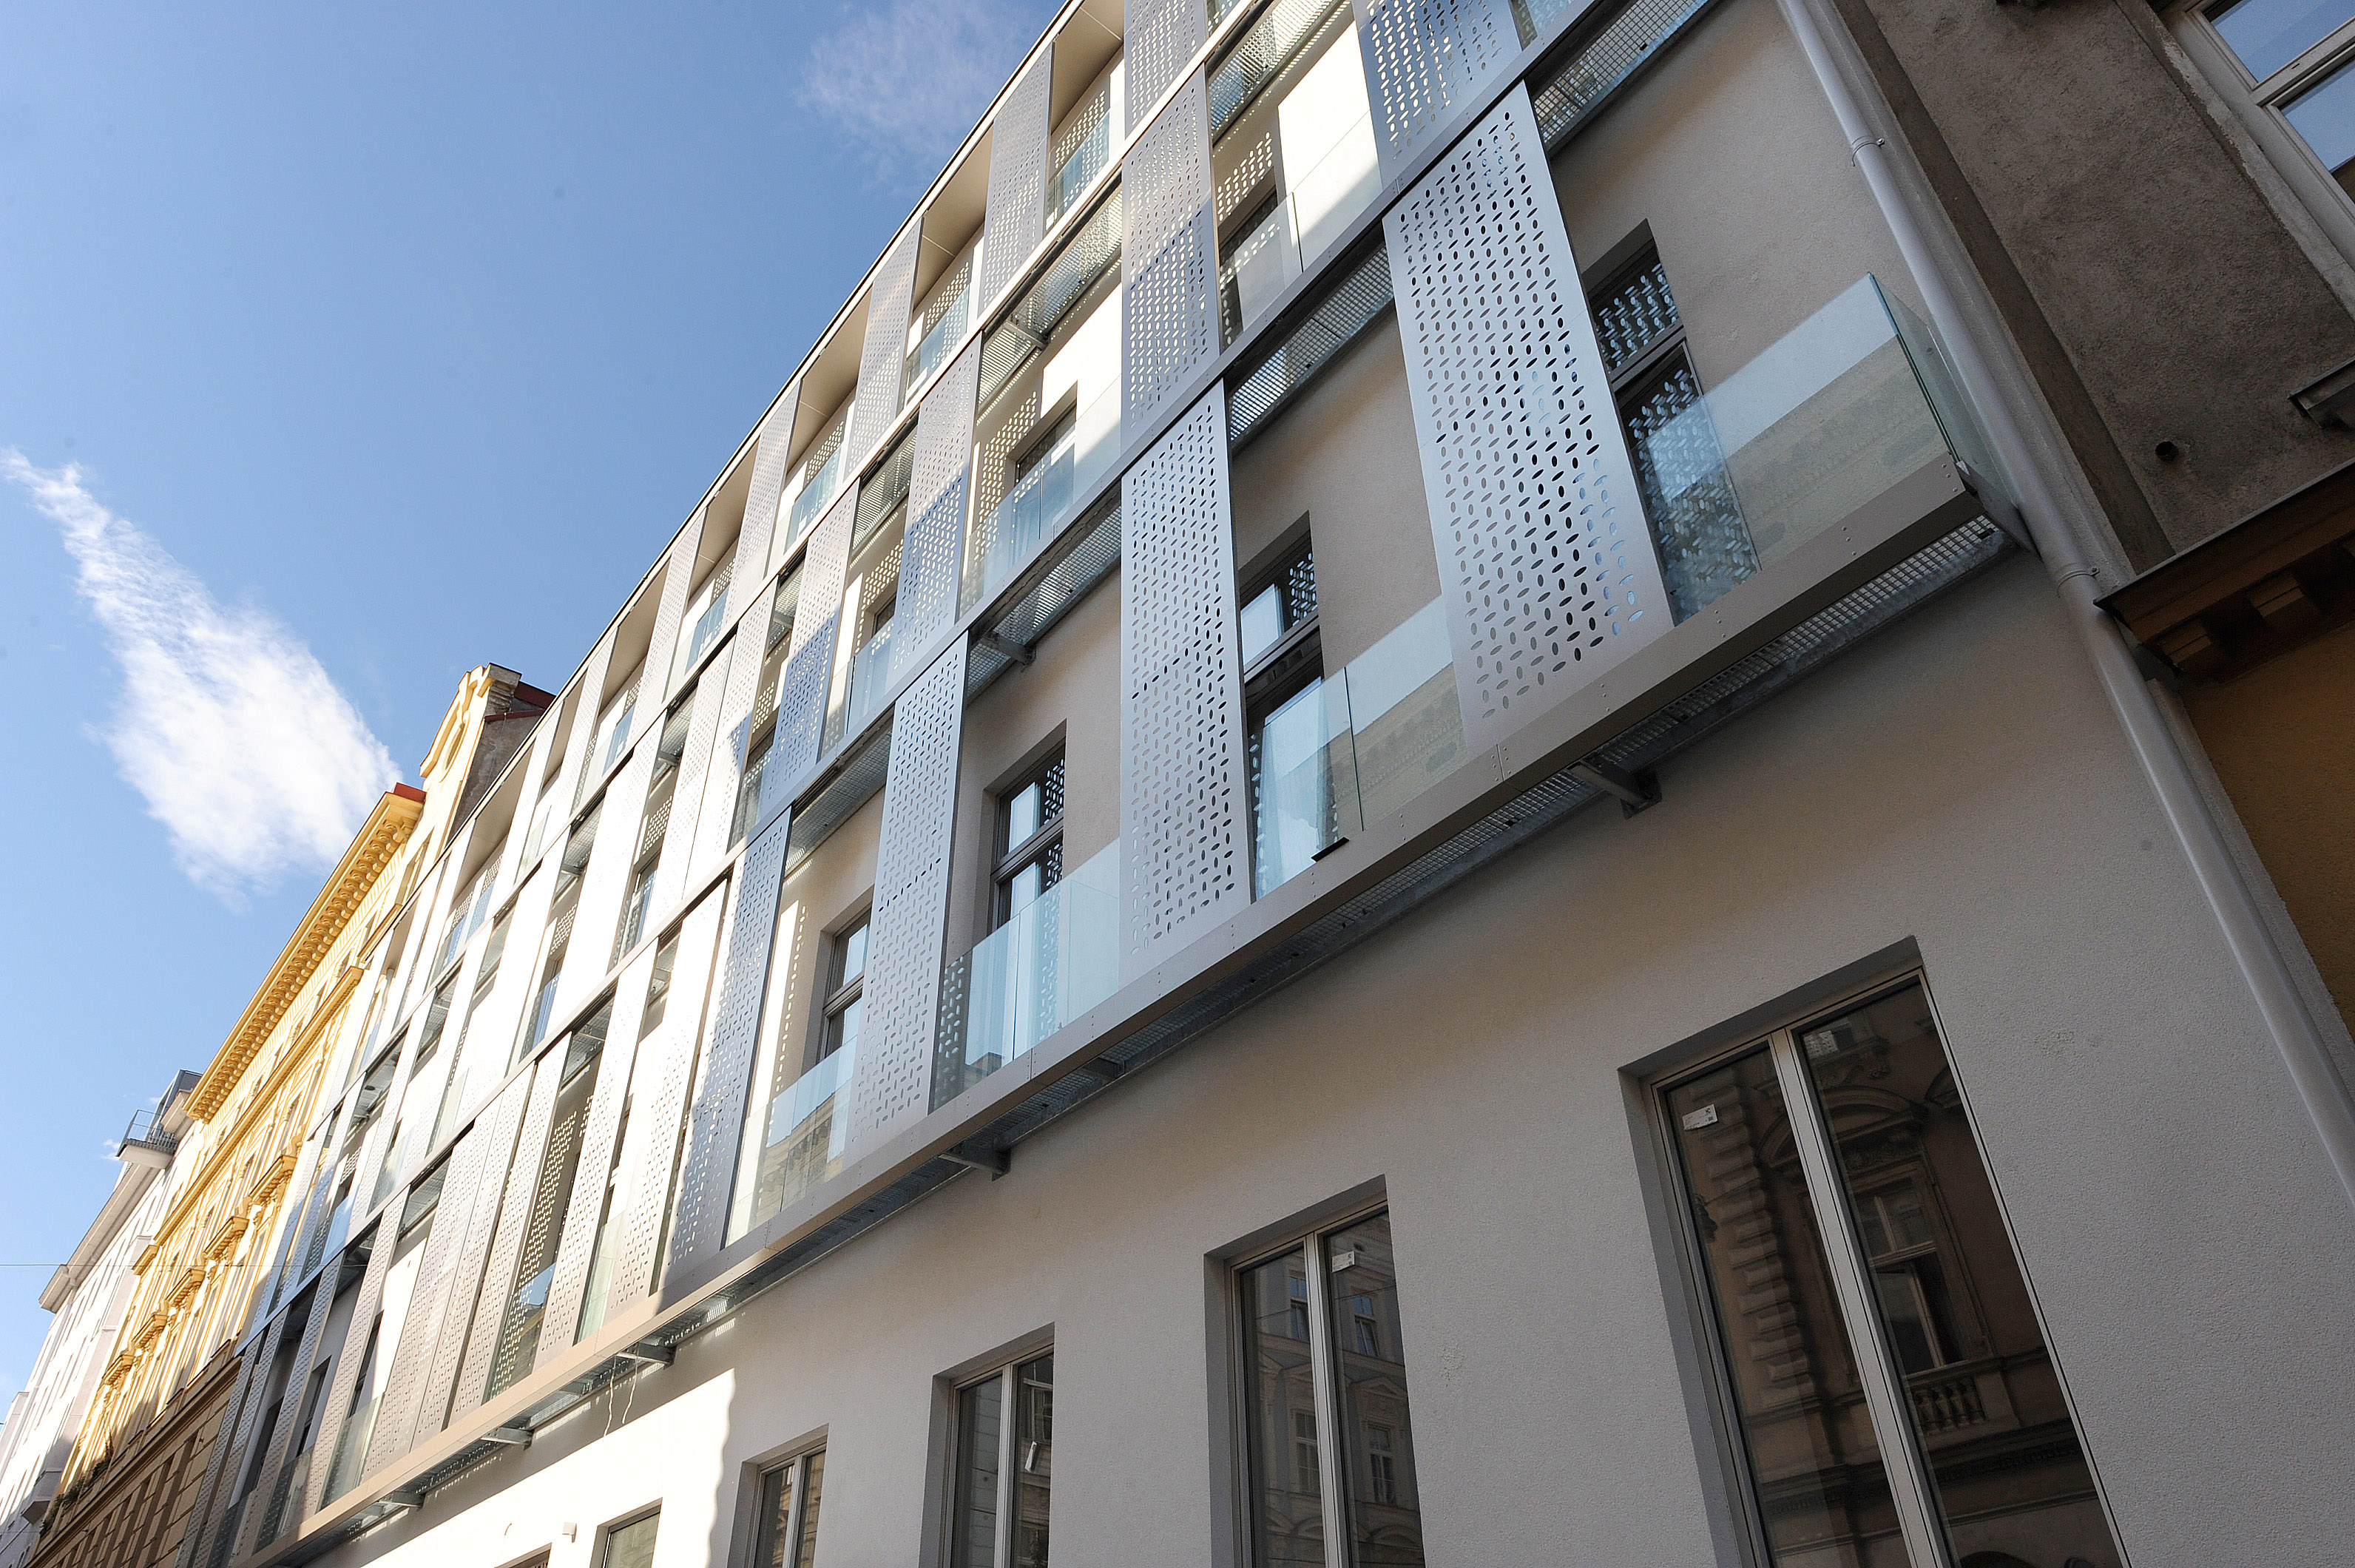 Fassade_Apartment_Stumpergasse_1